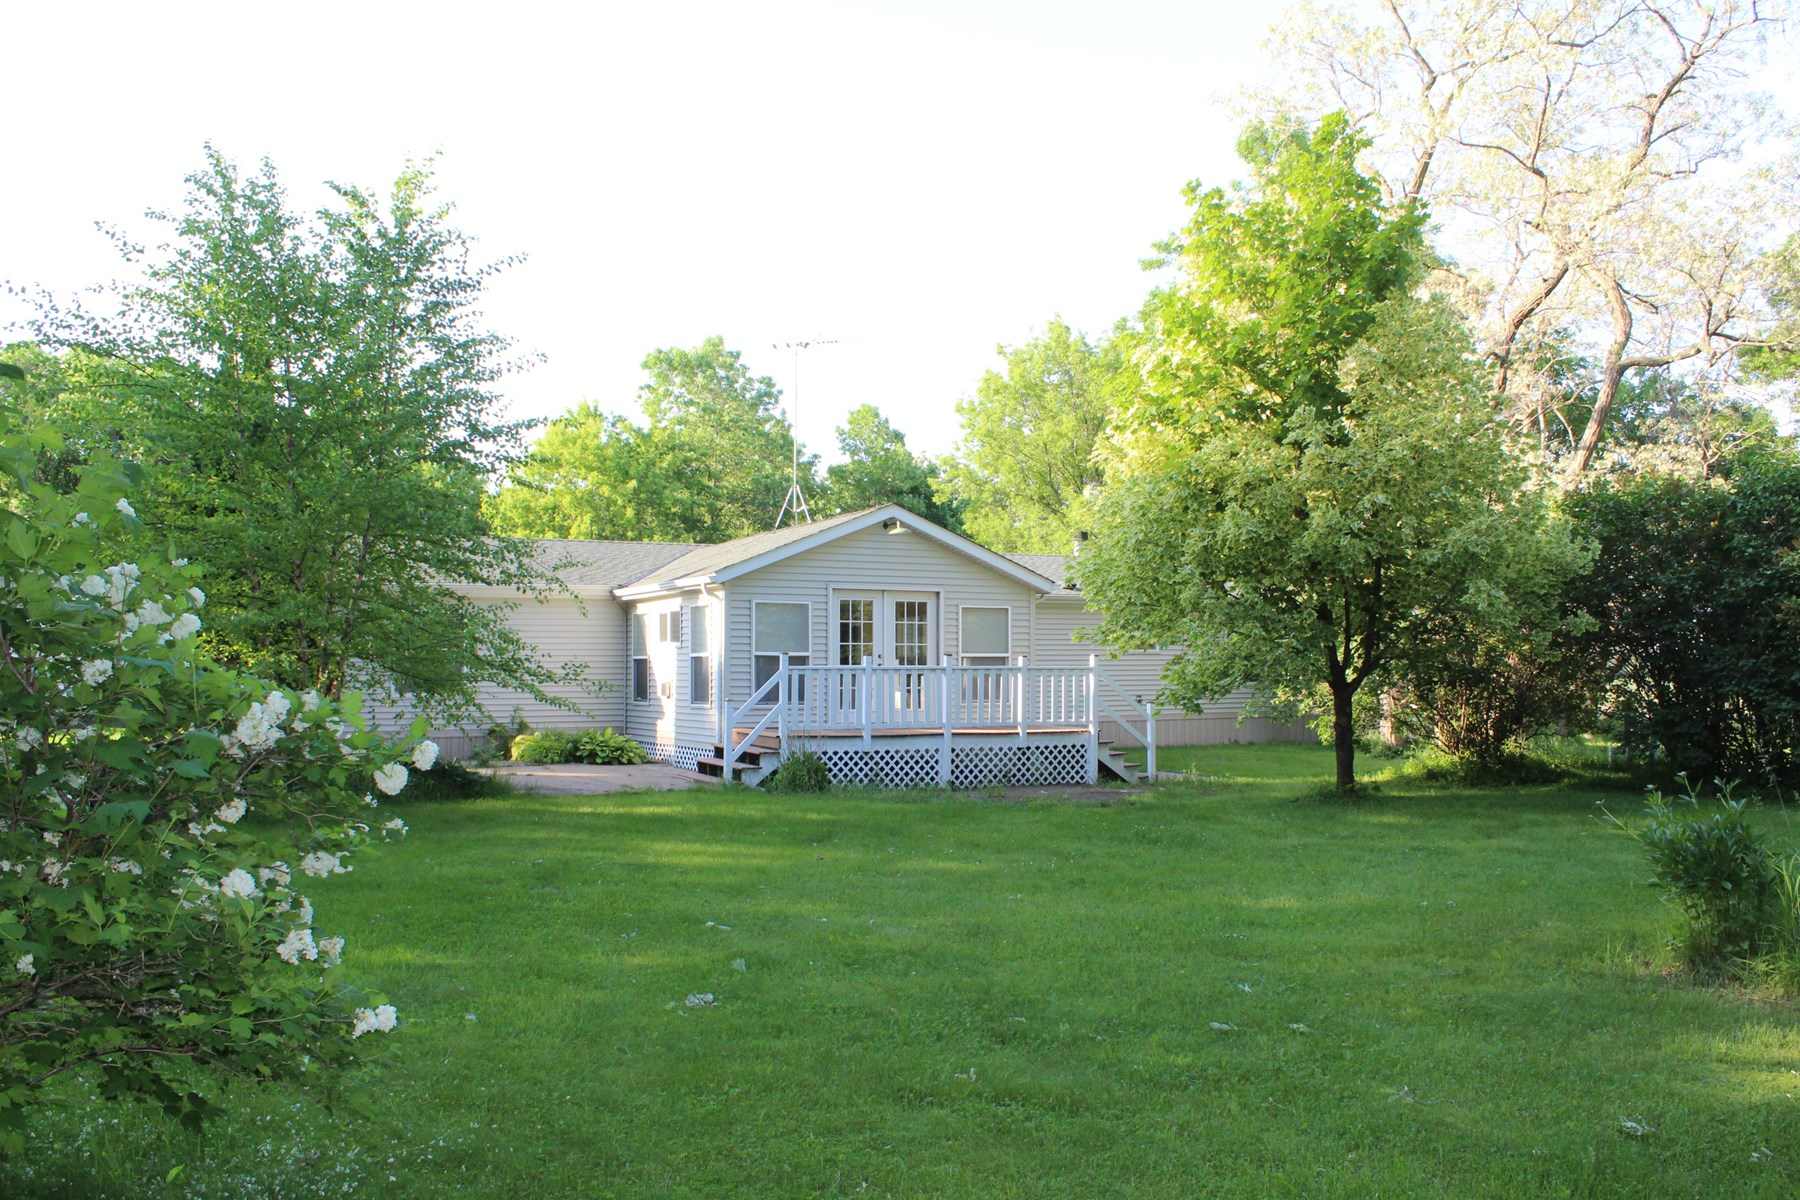 3BR/2BA Country Home on 2.32 acres in Mille Lacs Co